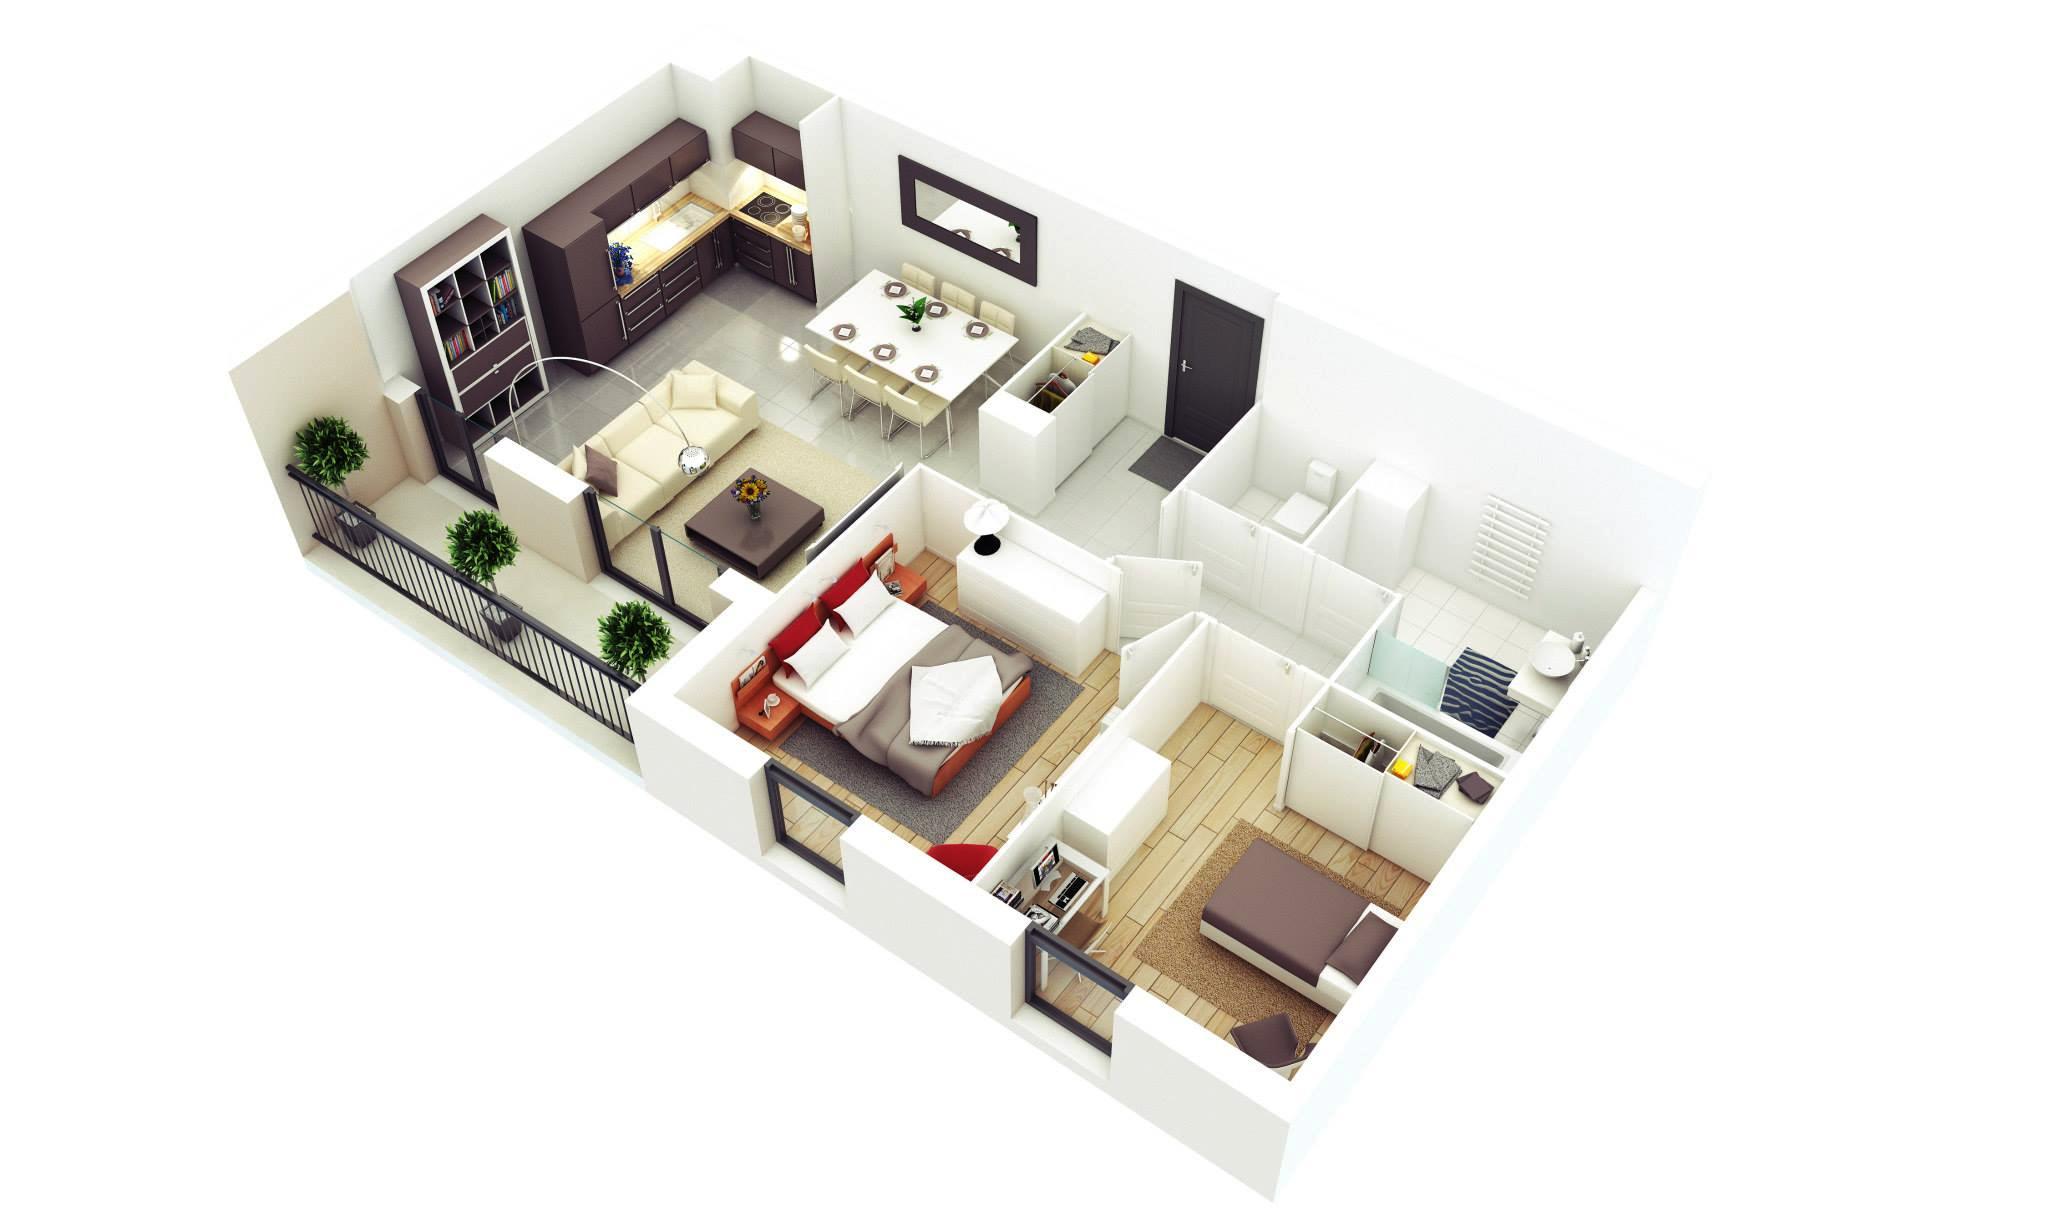 2 Bedroom Apartment Design Plans 25 more 2 bedroom 3d floor plans